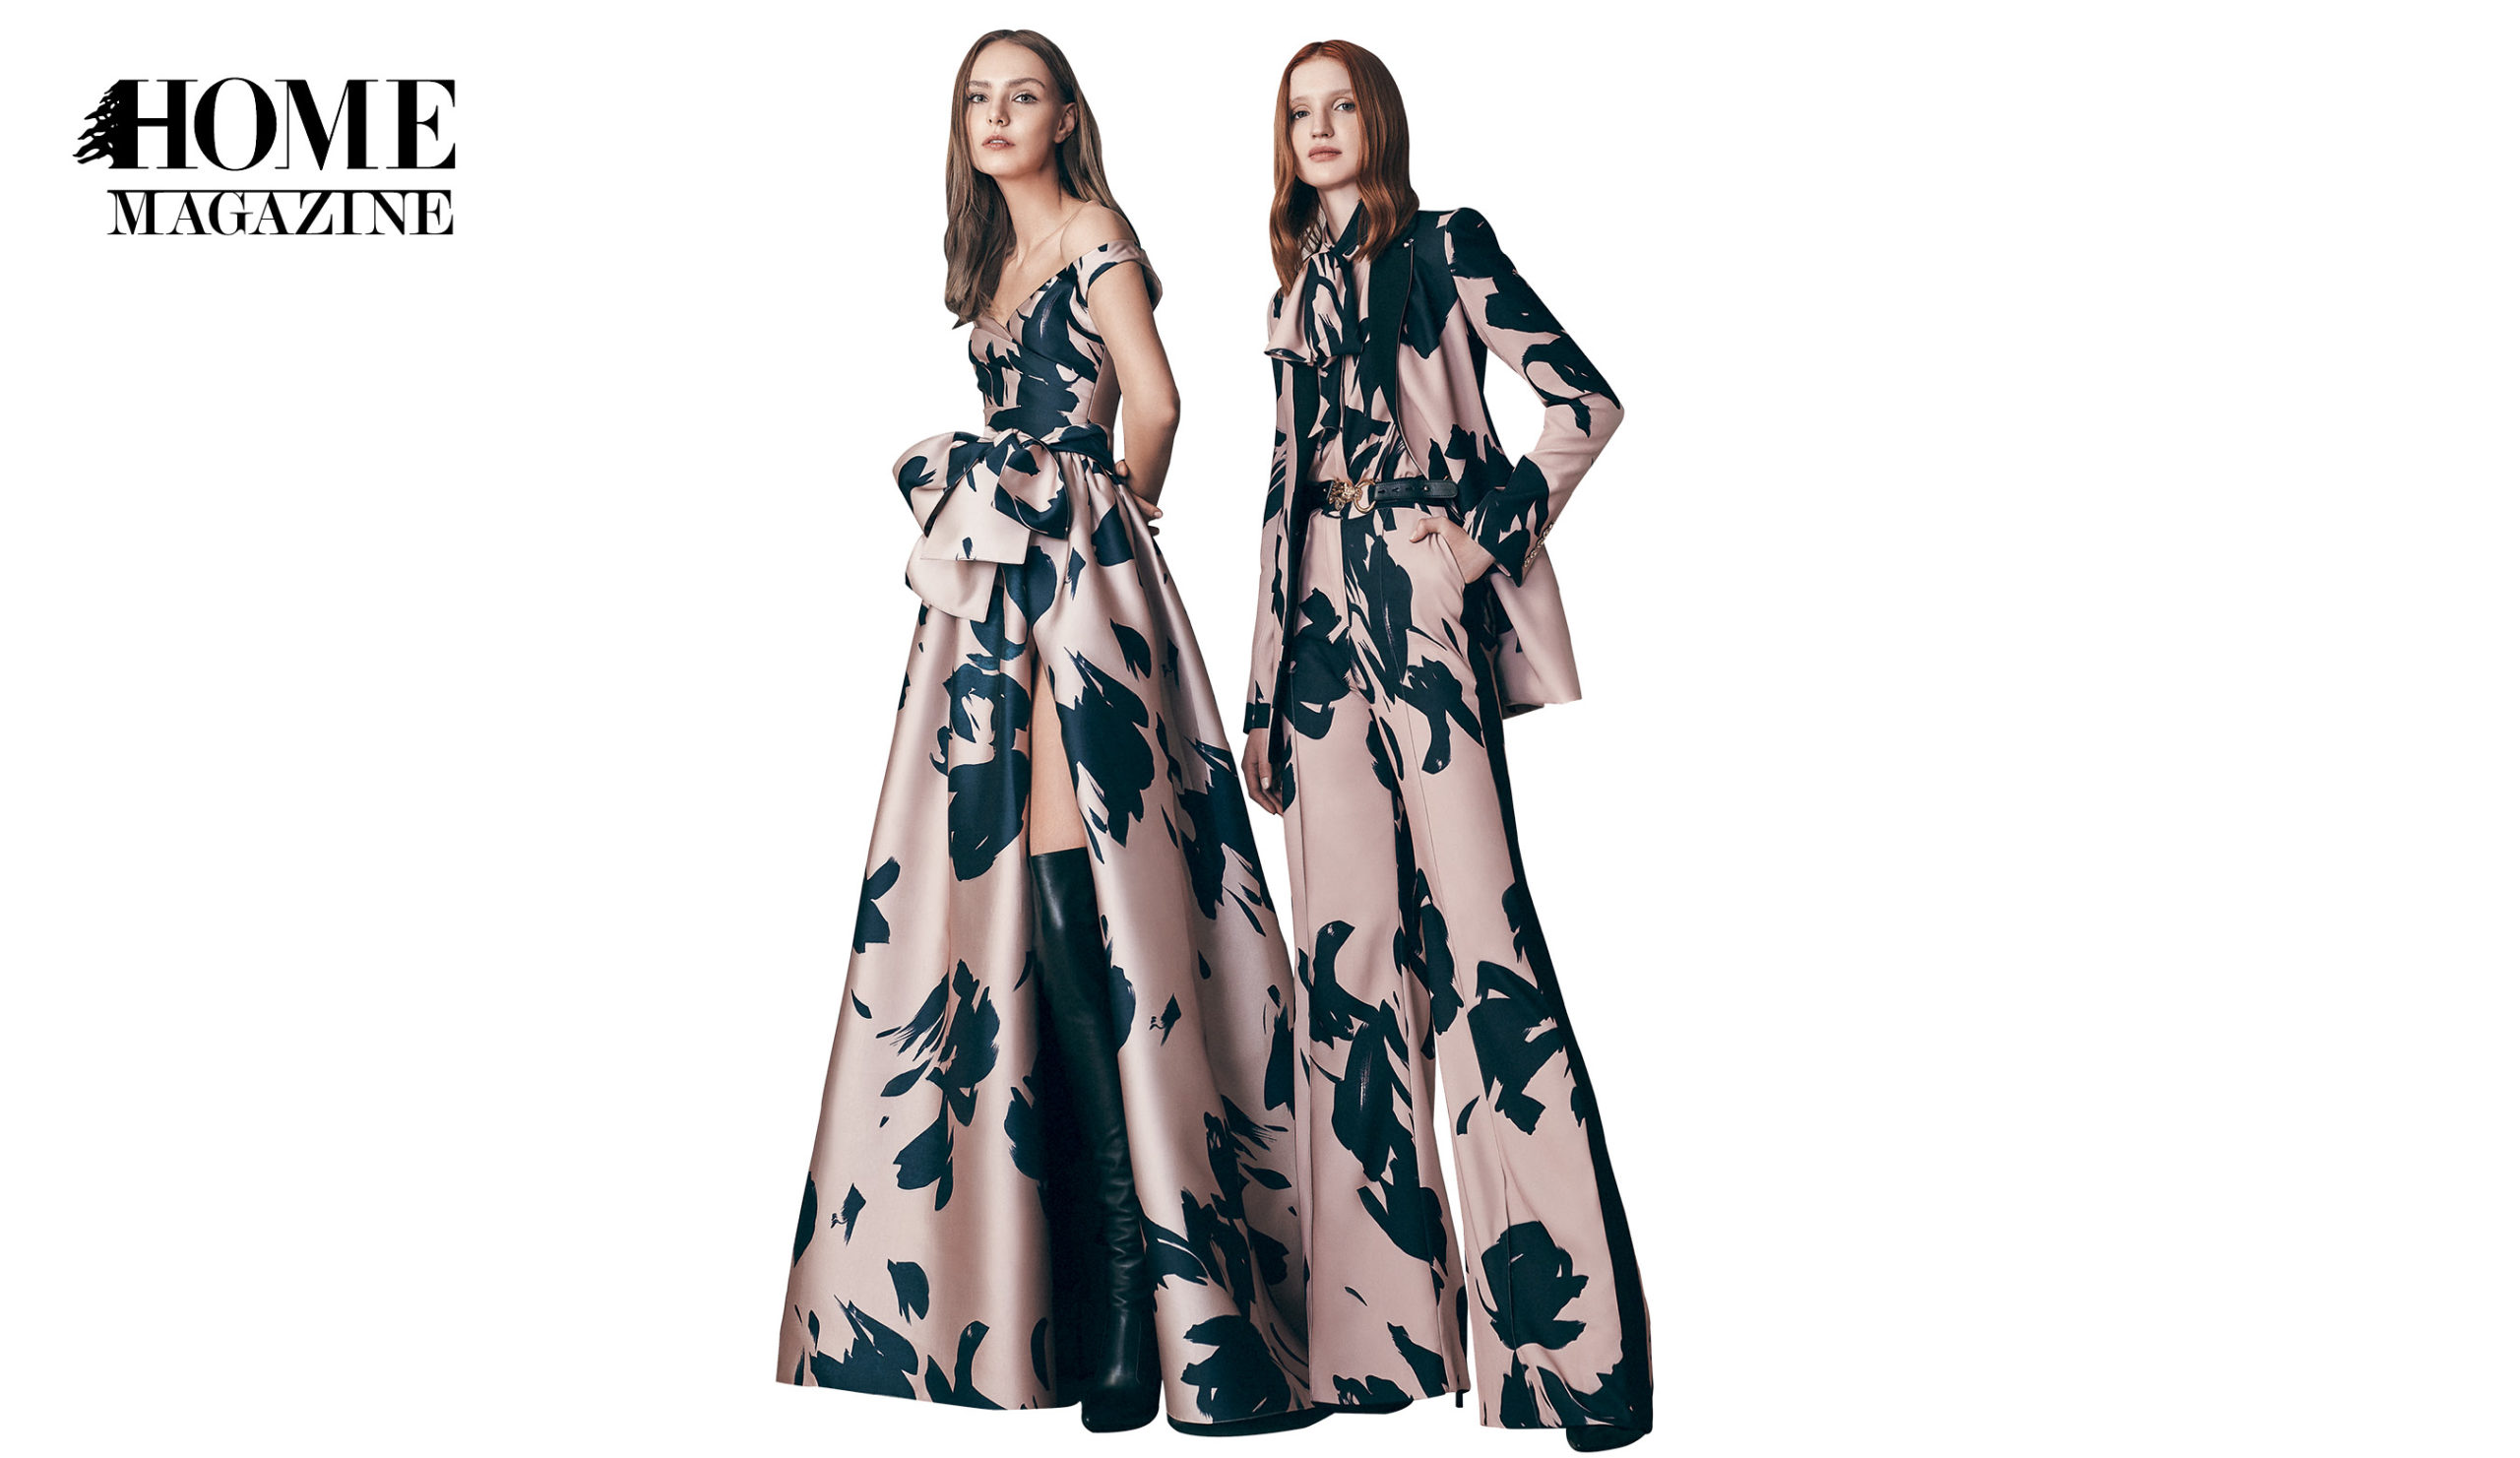 Two models wearing flower printed black and bronze dresses